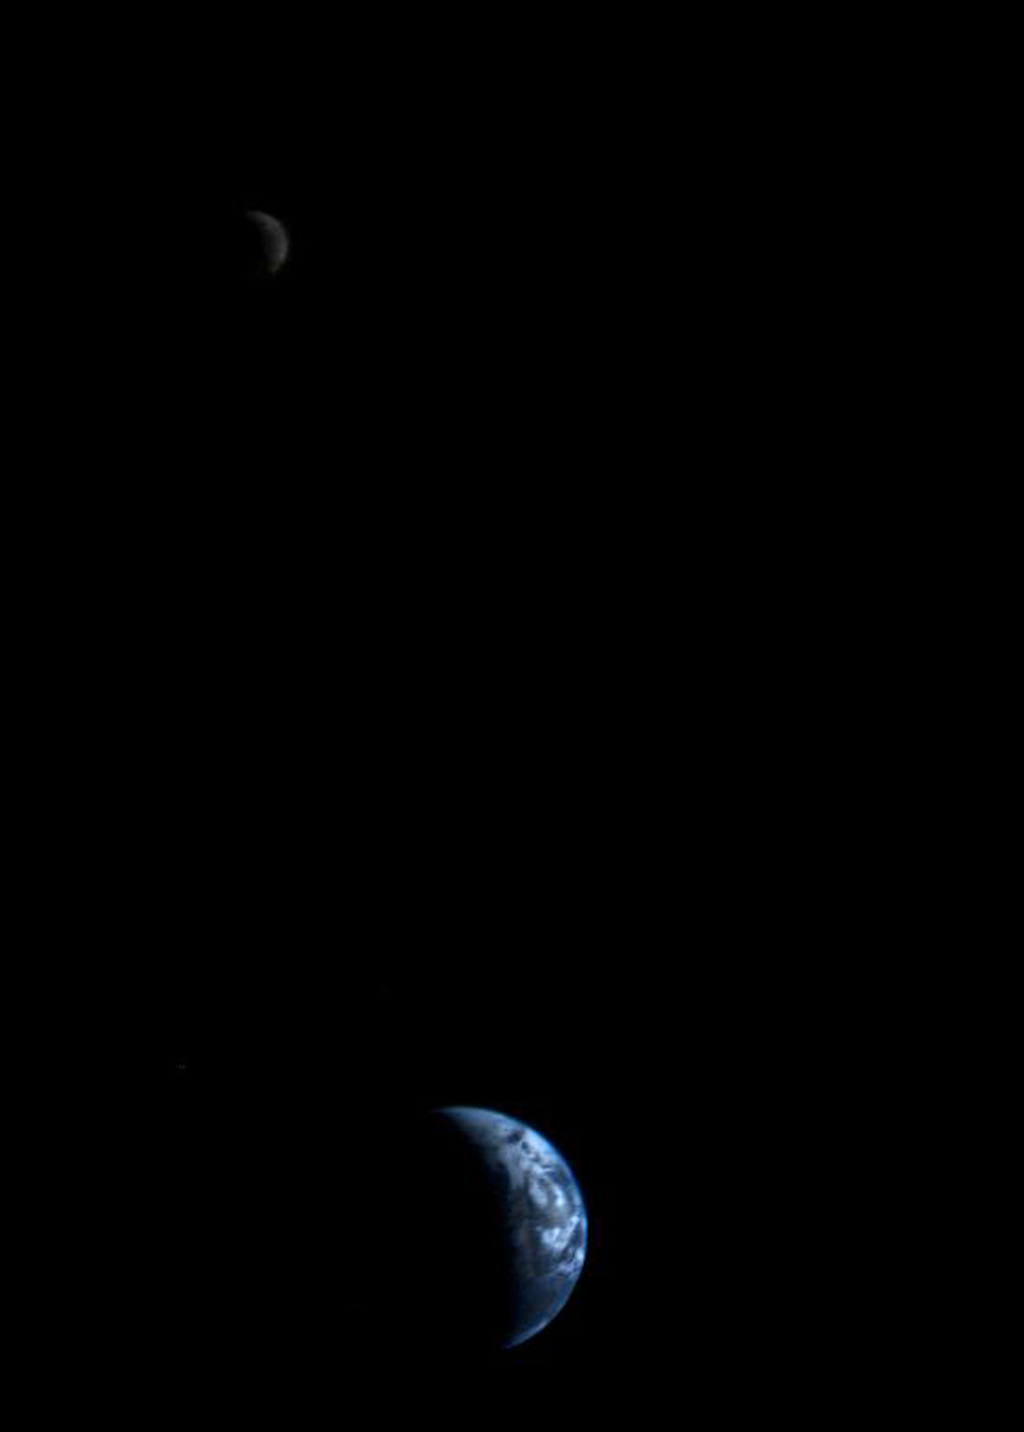 This picture of a crescent-shaped Earth and Moon, the first of its kind ever taken by a spacecraft, was recorded Sept. 18, 1977, by NASA's Voyager 1 when it was 7.25 million miles (11.66 million kilometers) from Earth.